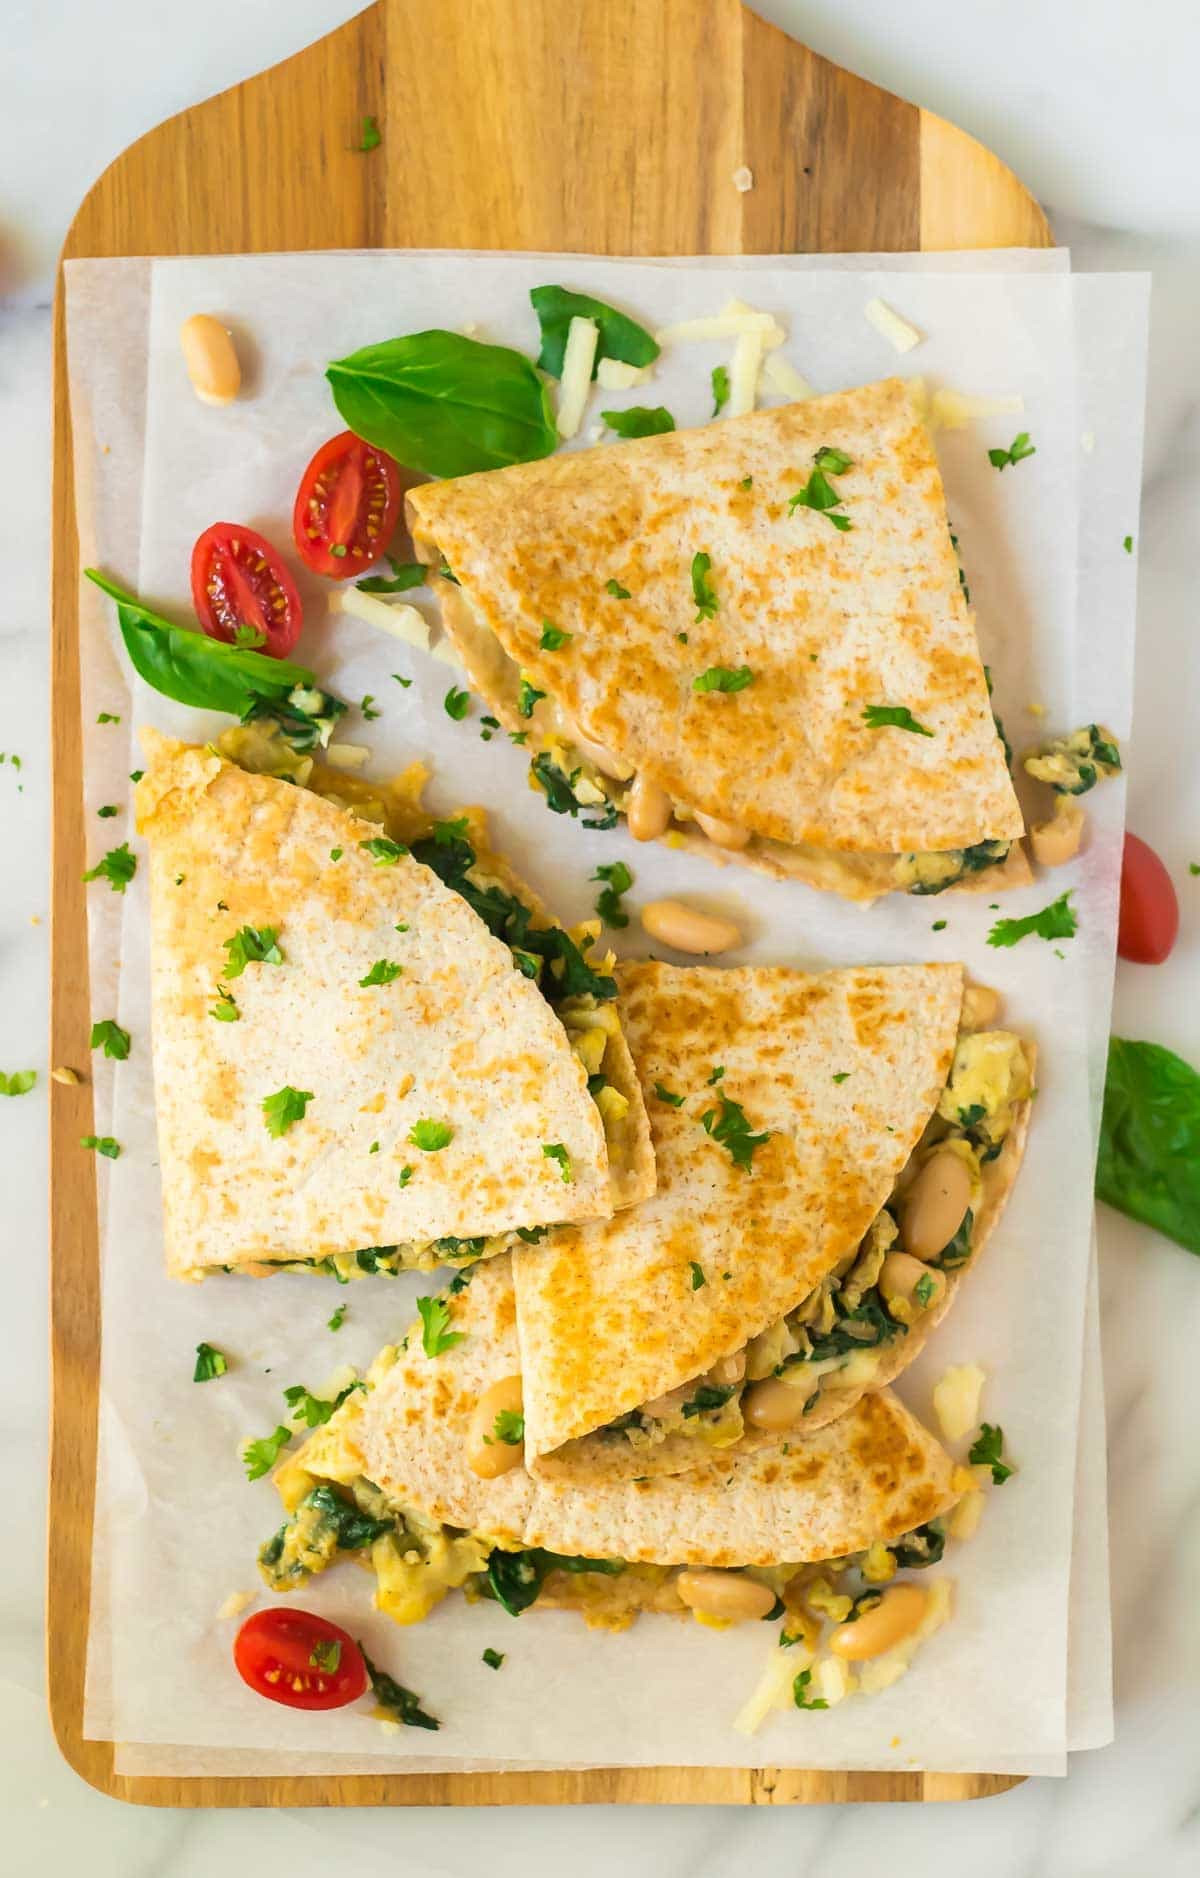 Healthy Breakfast Quesadilla Recipes  Breakfast Quesadilla with Cheese Spinach and White Beans